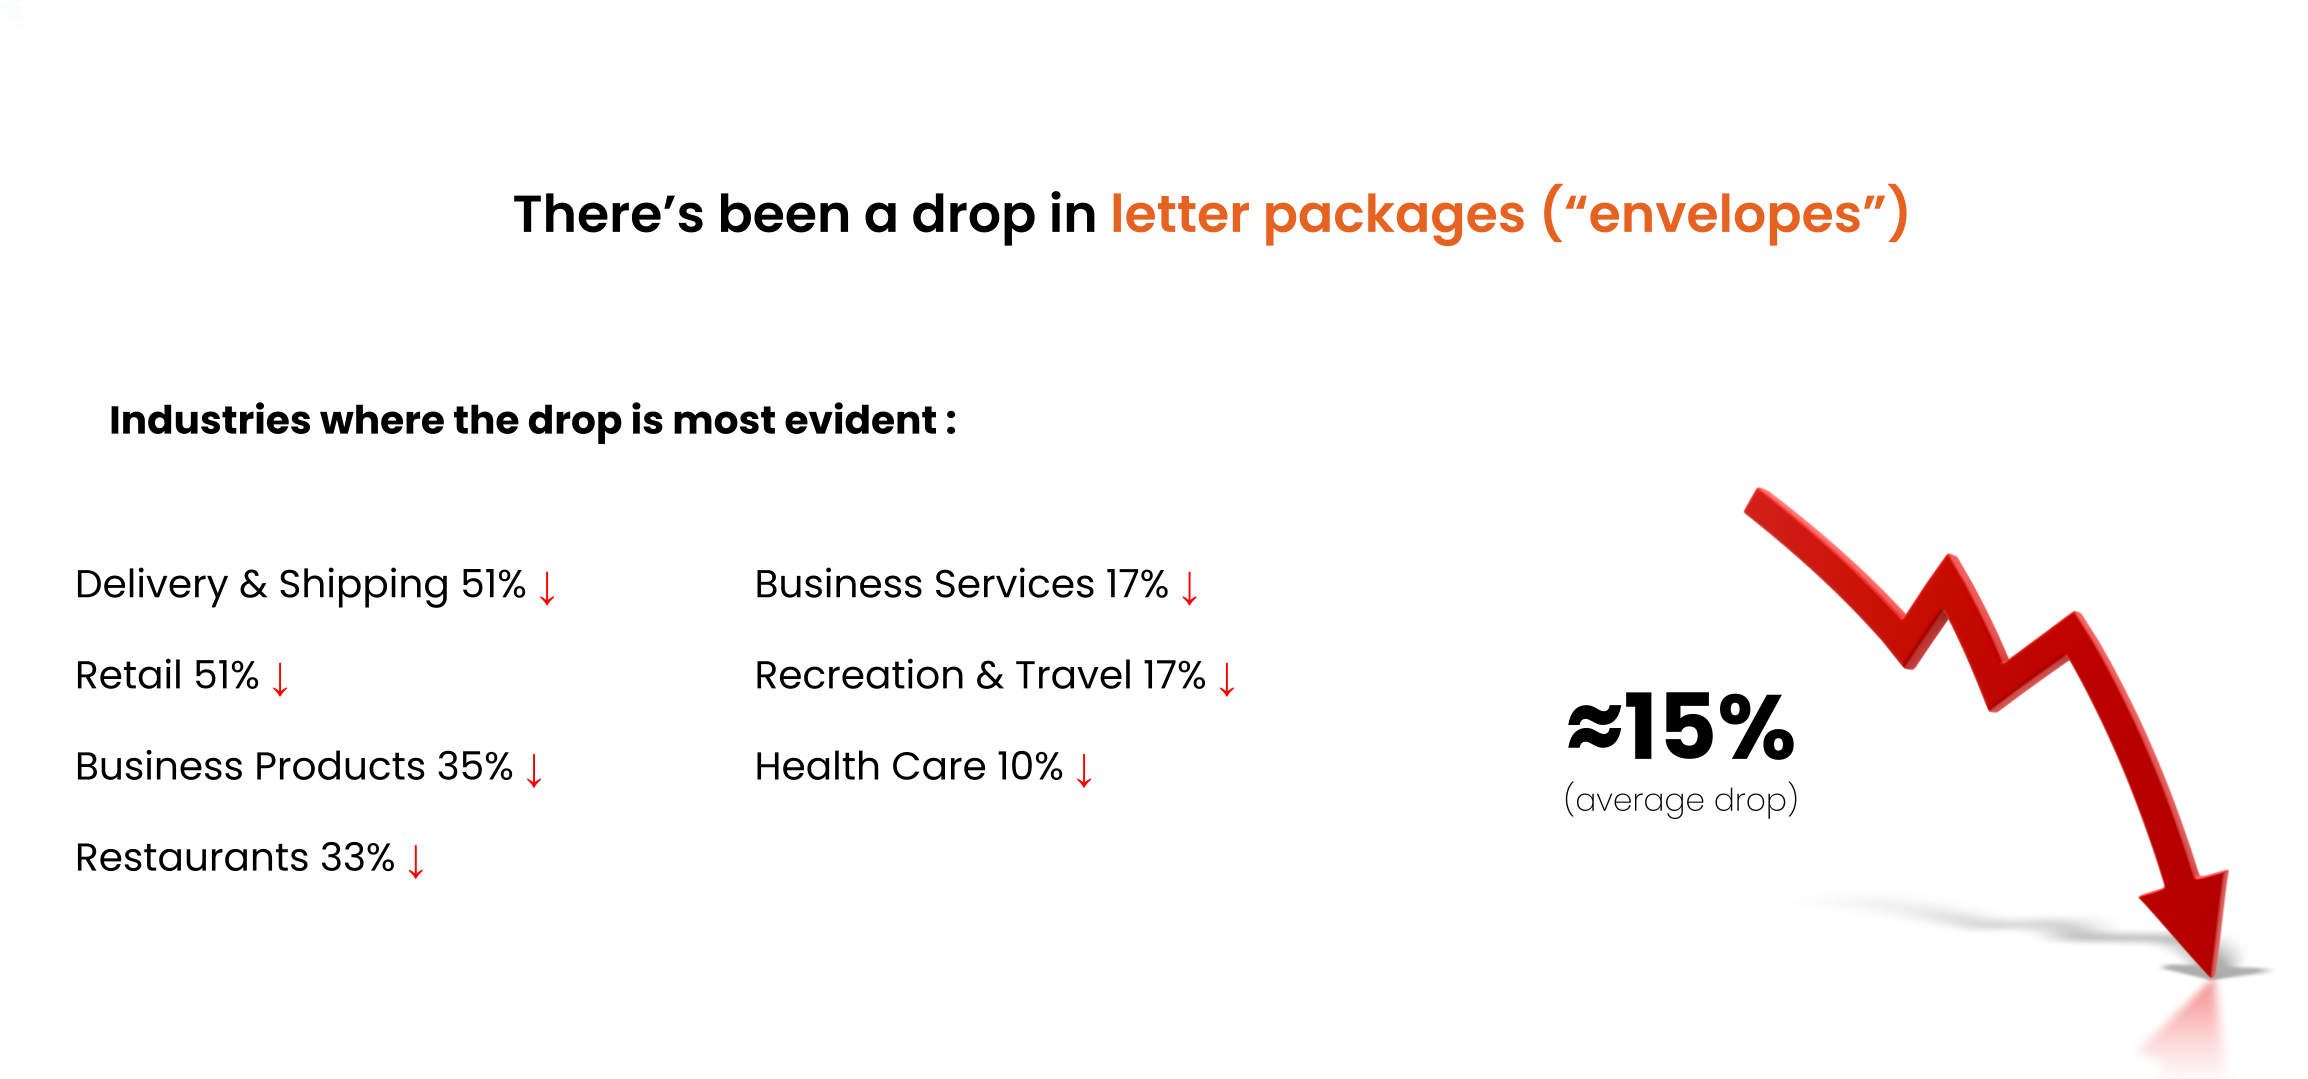 drop in the envelope distribution